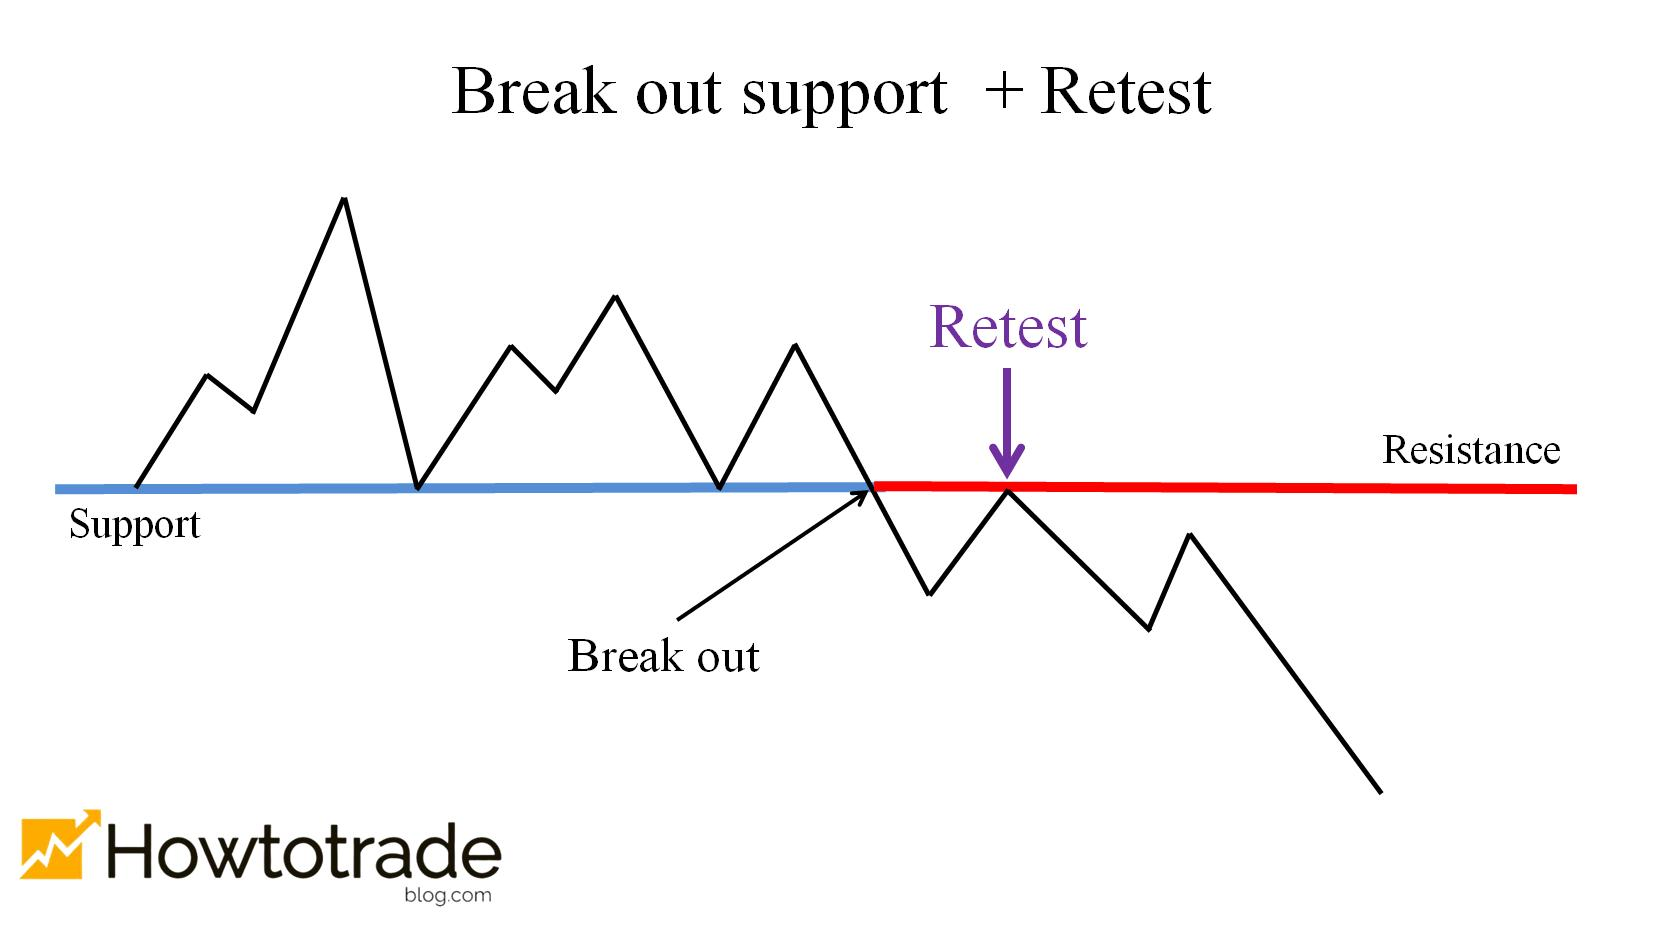 The price breaks out of the support and retests